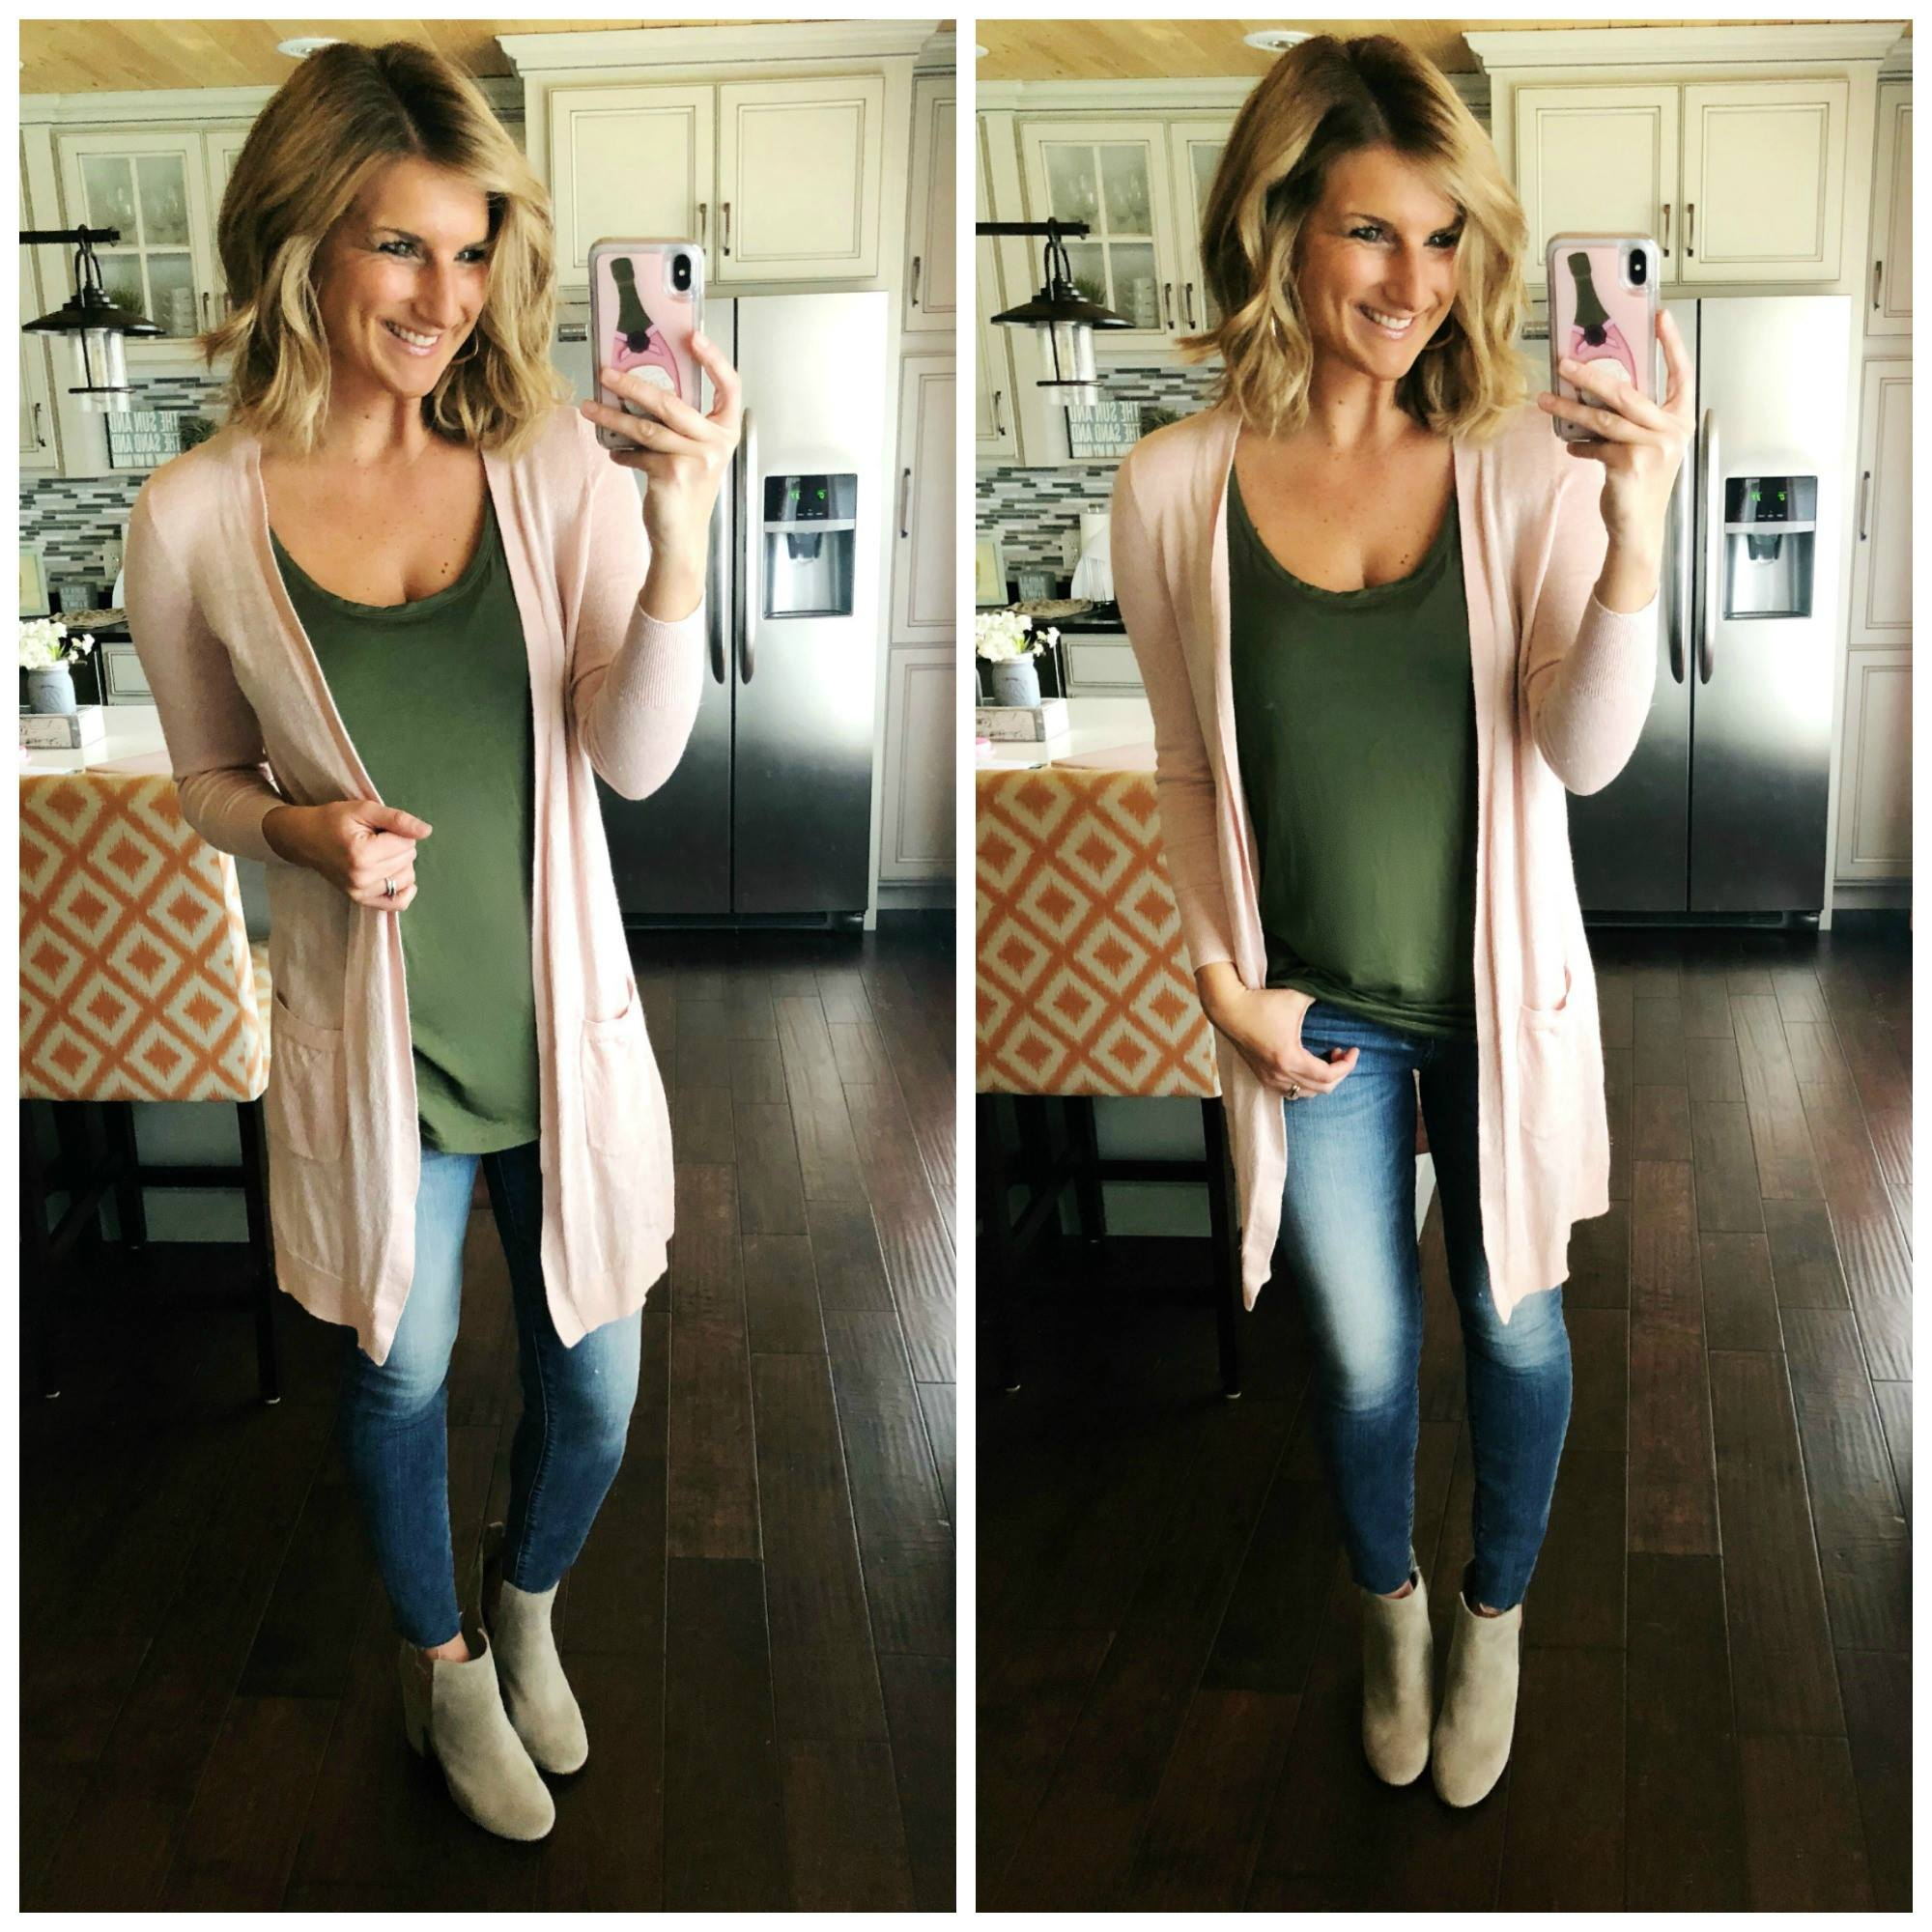 Casual Spring Outfit // Relaxed Tank Top + Blush Cardigan + Skinny Jeans + Tan Booties